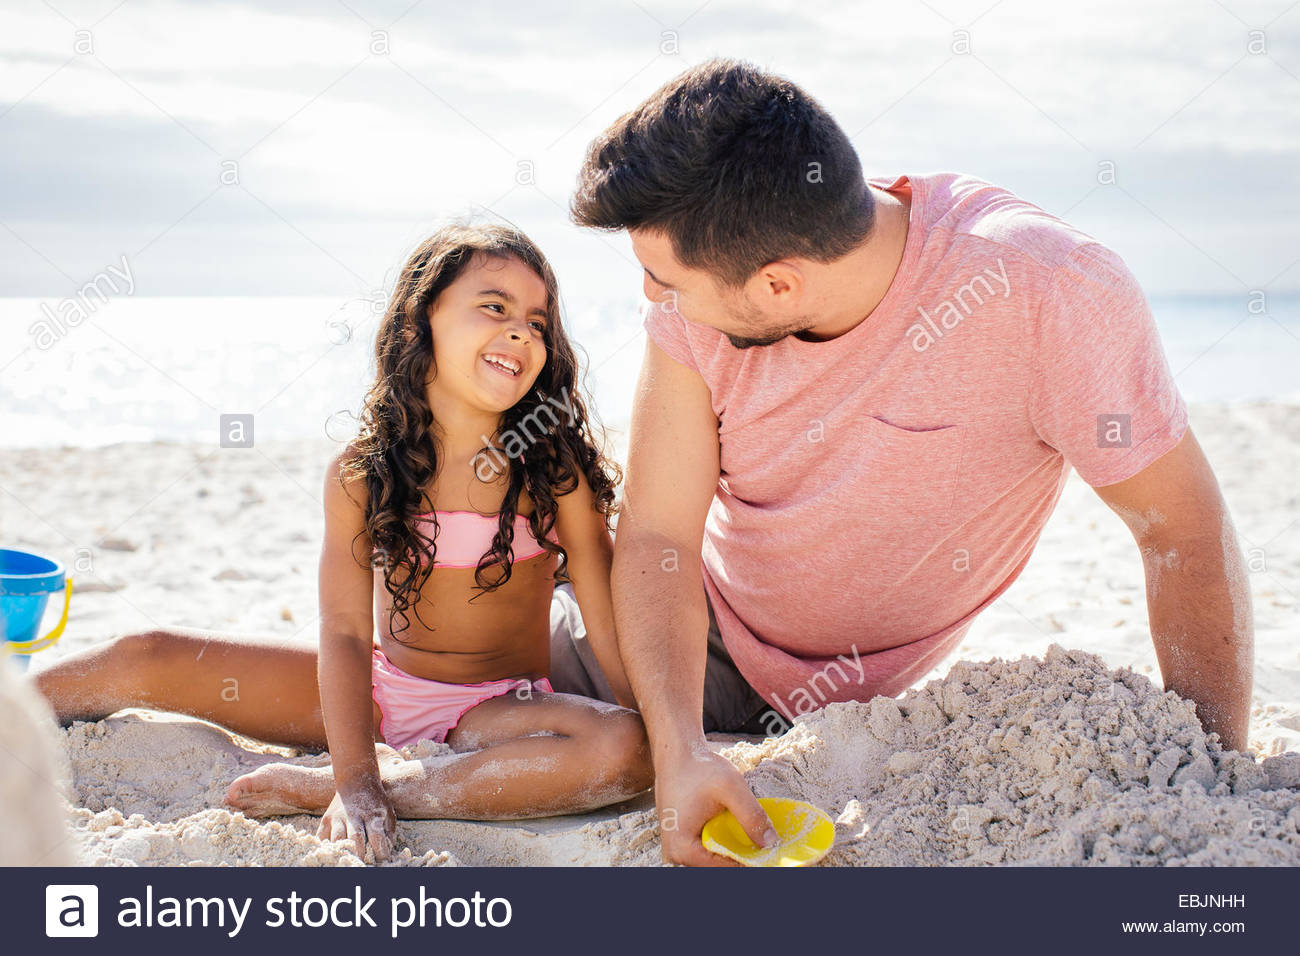 Girl and father building sandcastle on beach, Tuscany, Italy - Stock Image